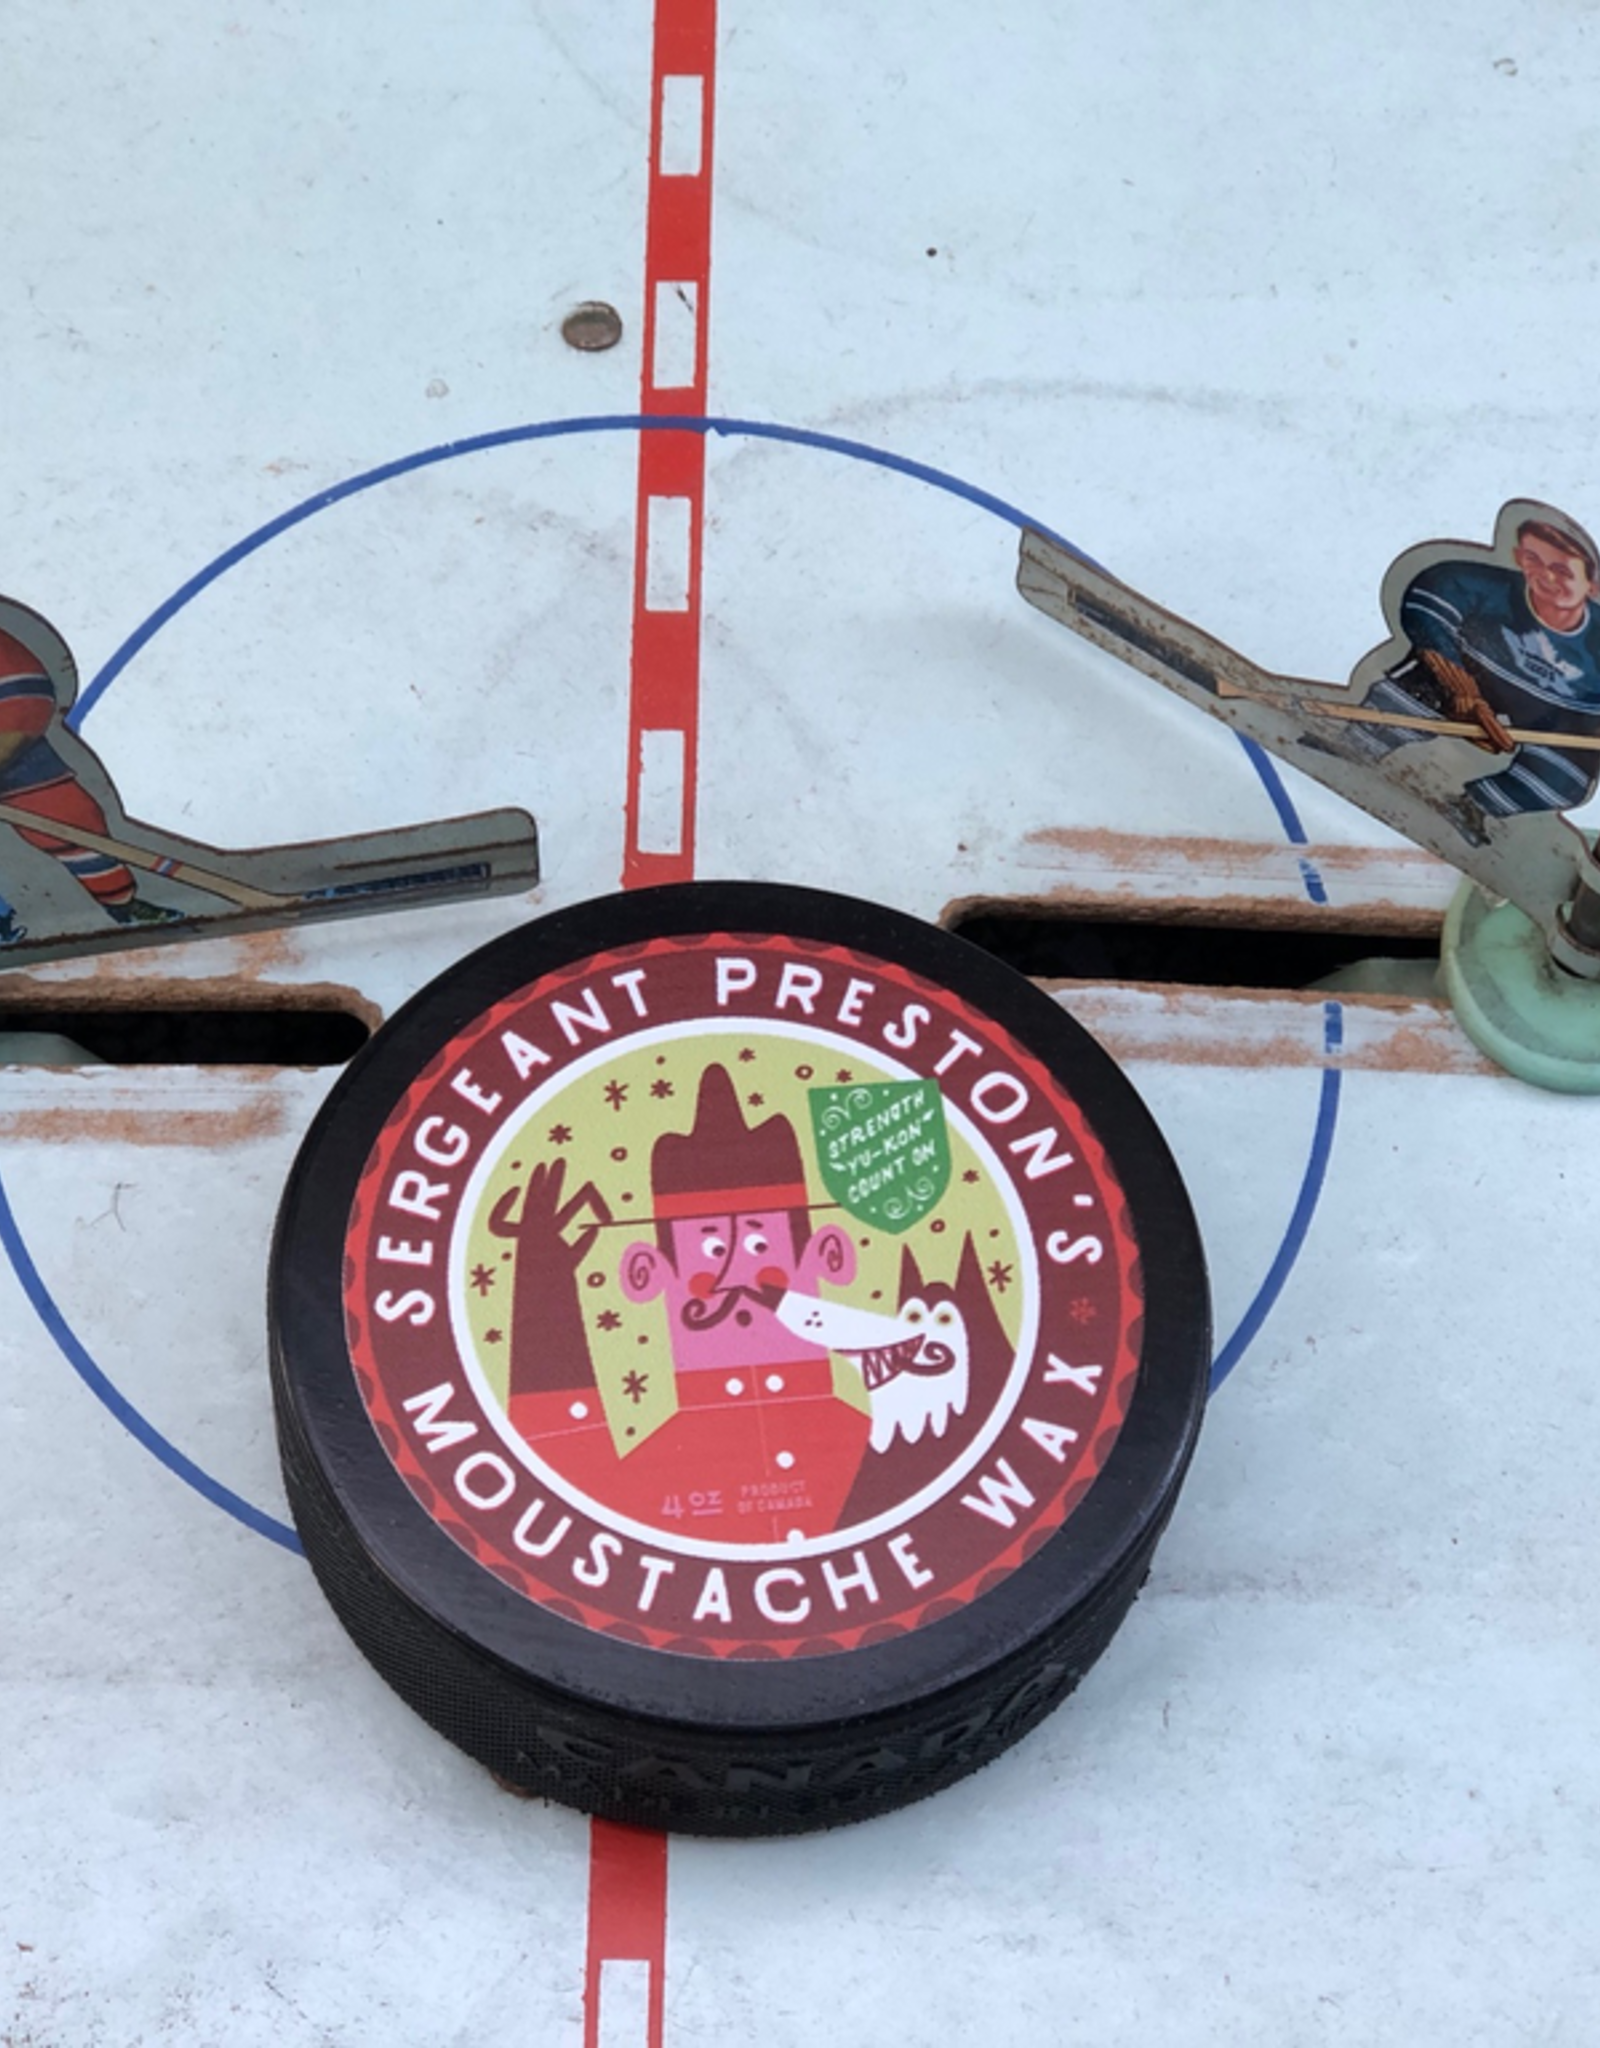 The Collective Good The Collective Good Tom Froese-Sergeant Preston Hockey Puck